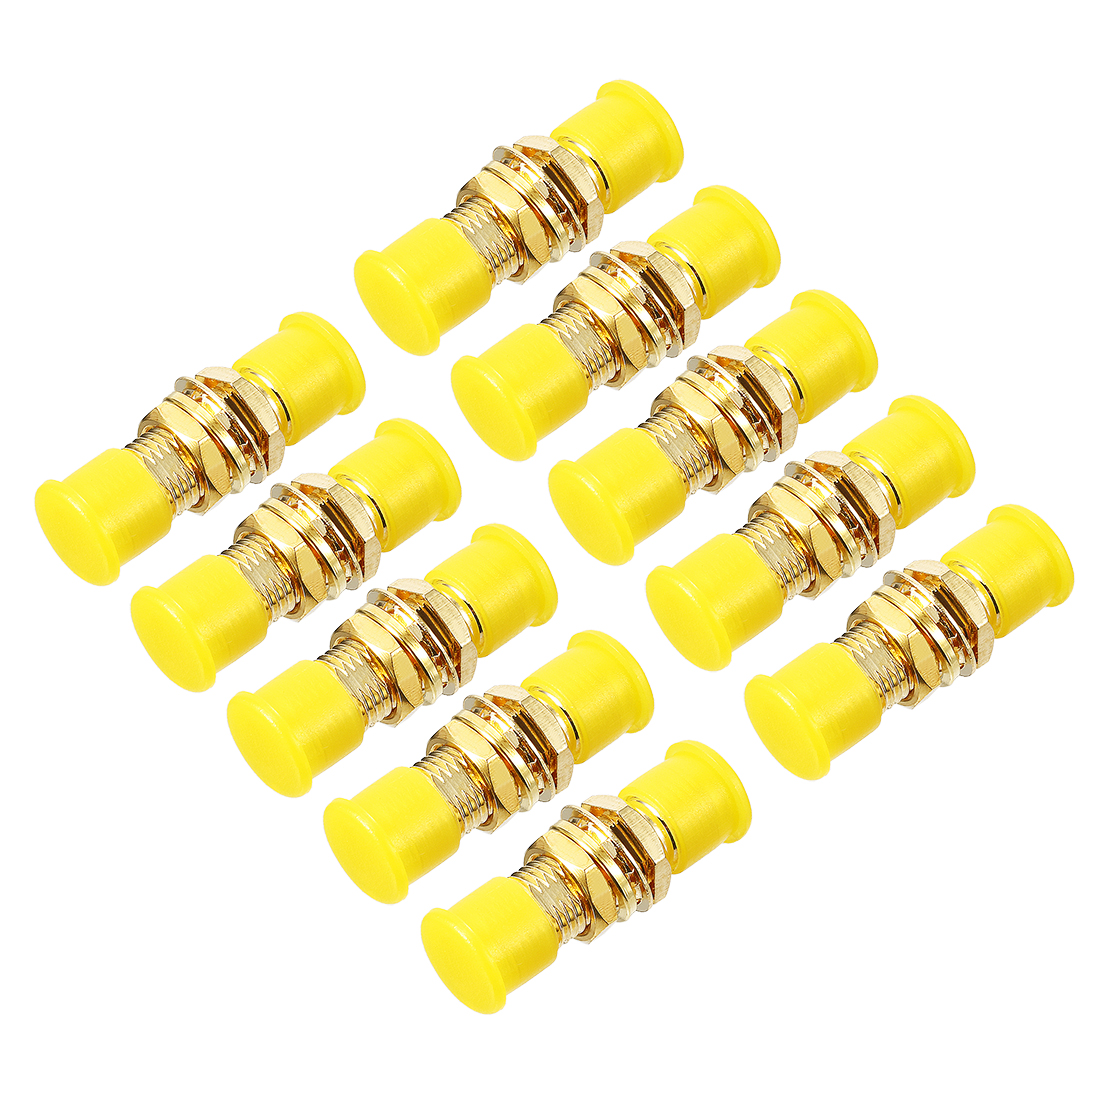 10pcs 23mm Length SMA Female to SMA Female Jack RF Coaxial Adapter Connector